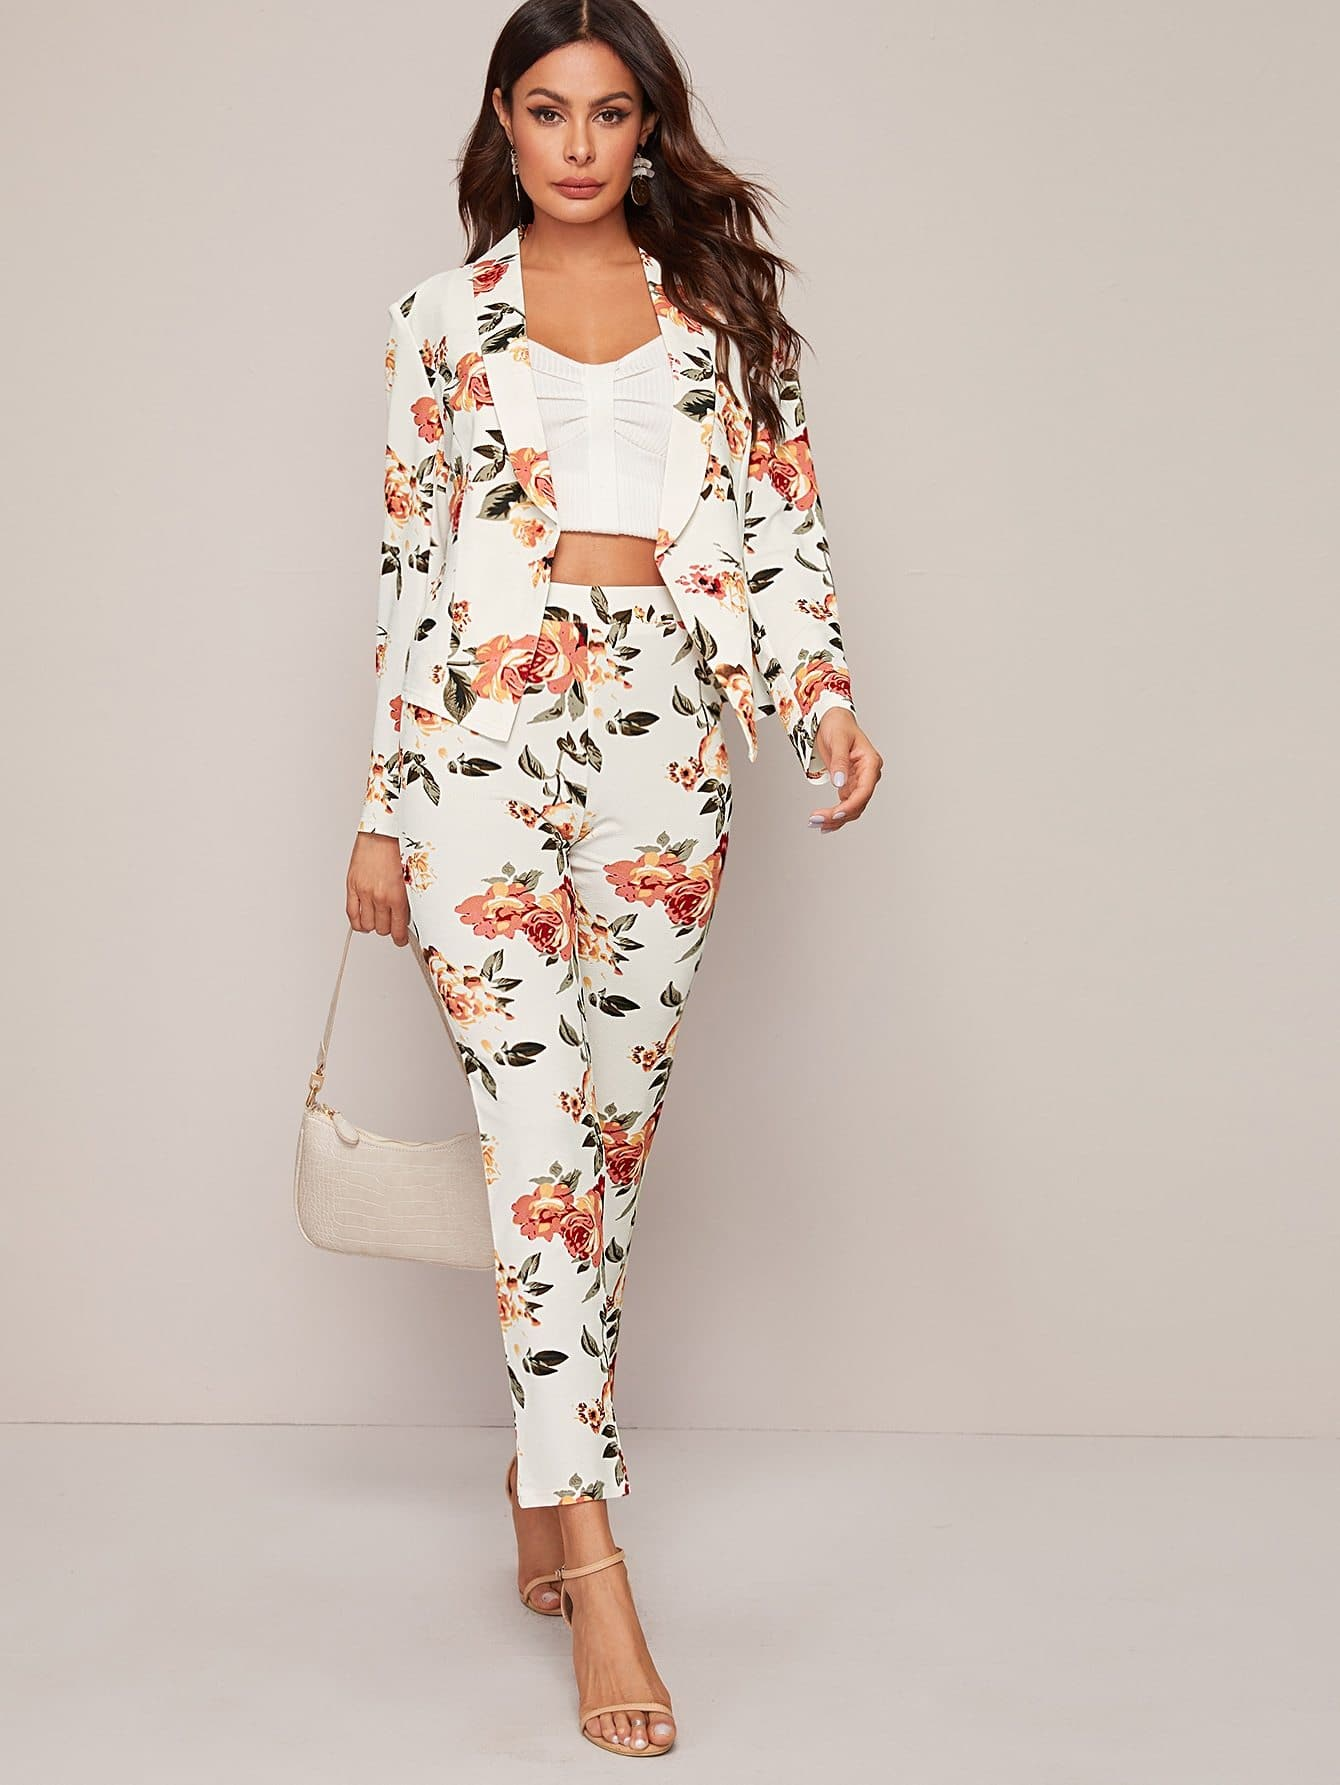 Shawl Collar Floral Blazer and Pants Set - FLJ CORPORATIONS